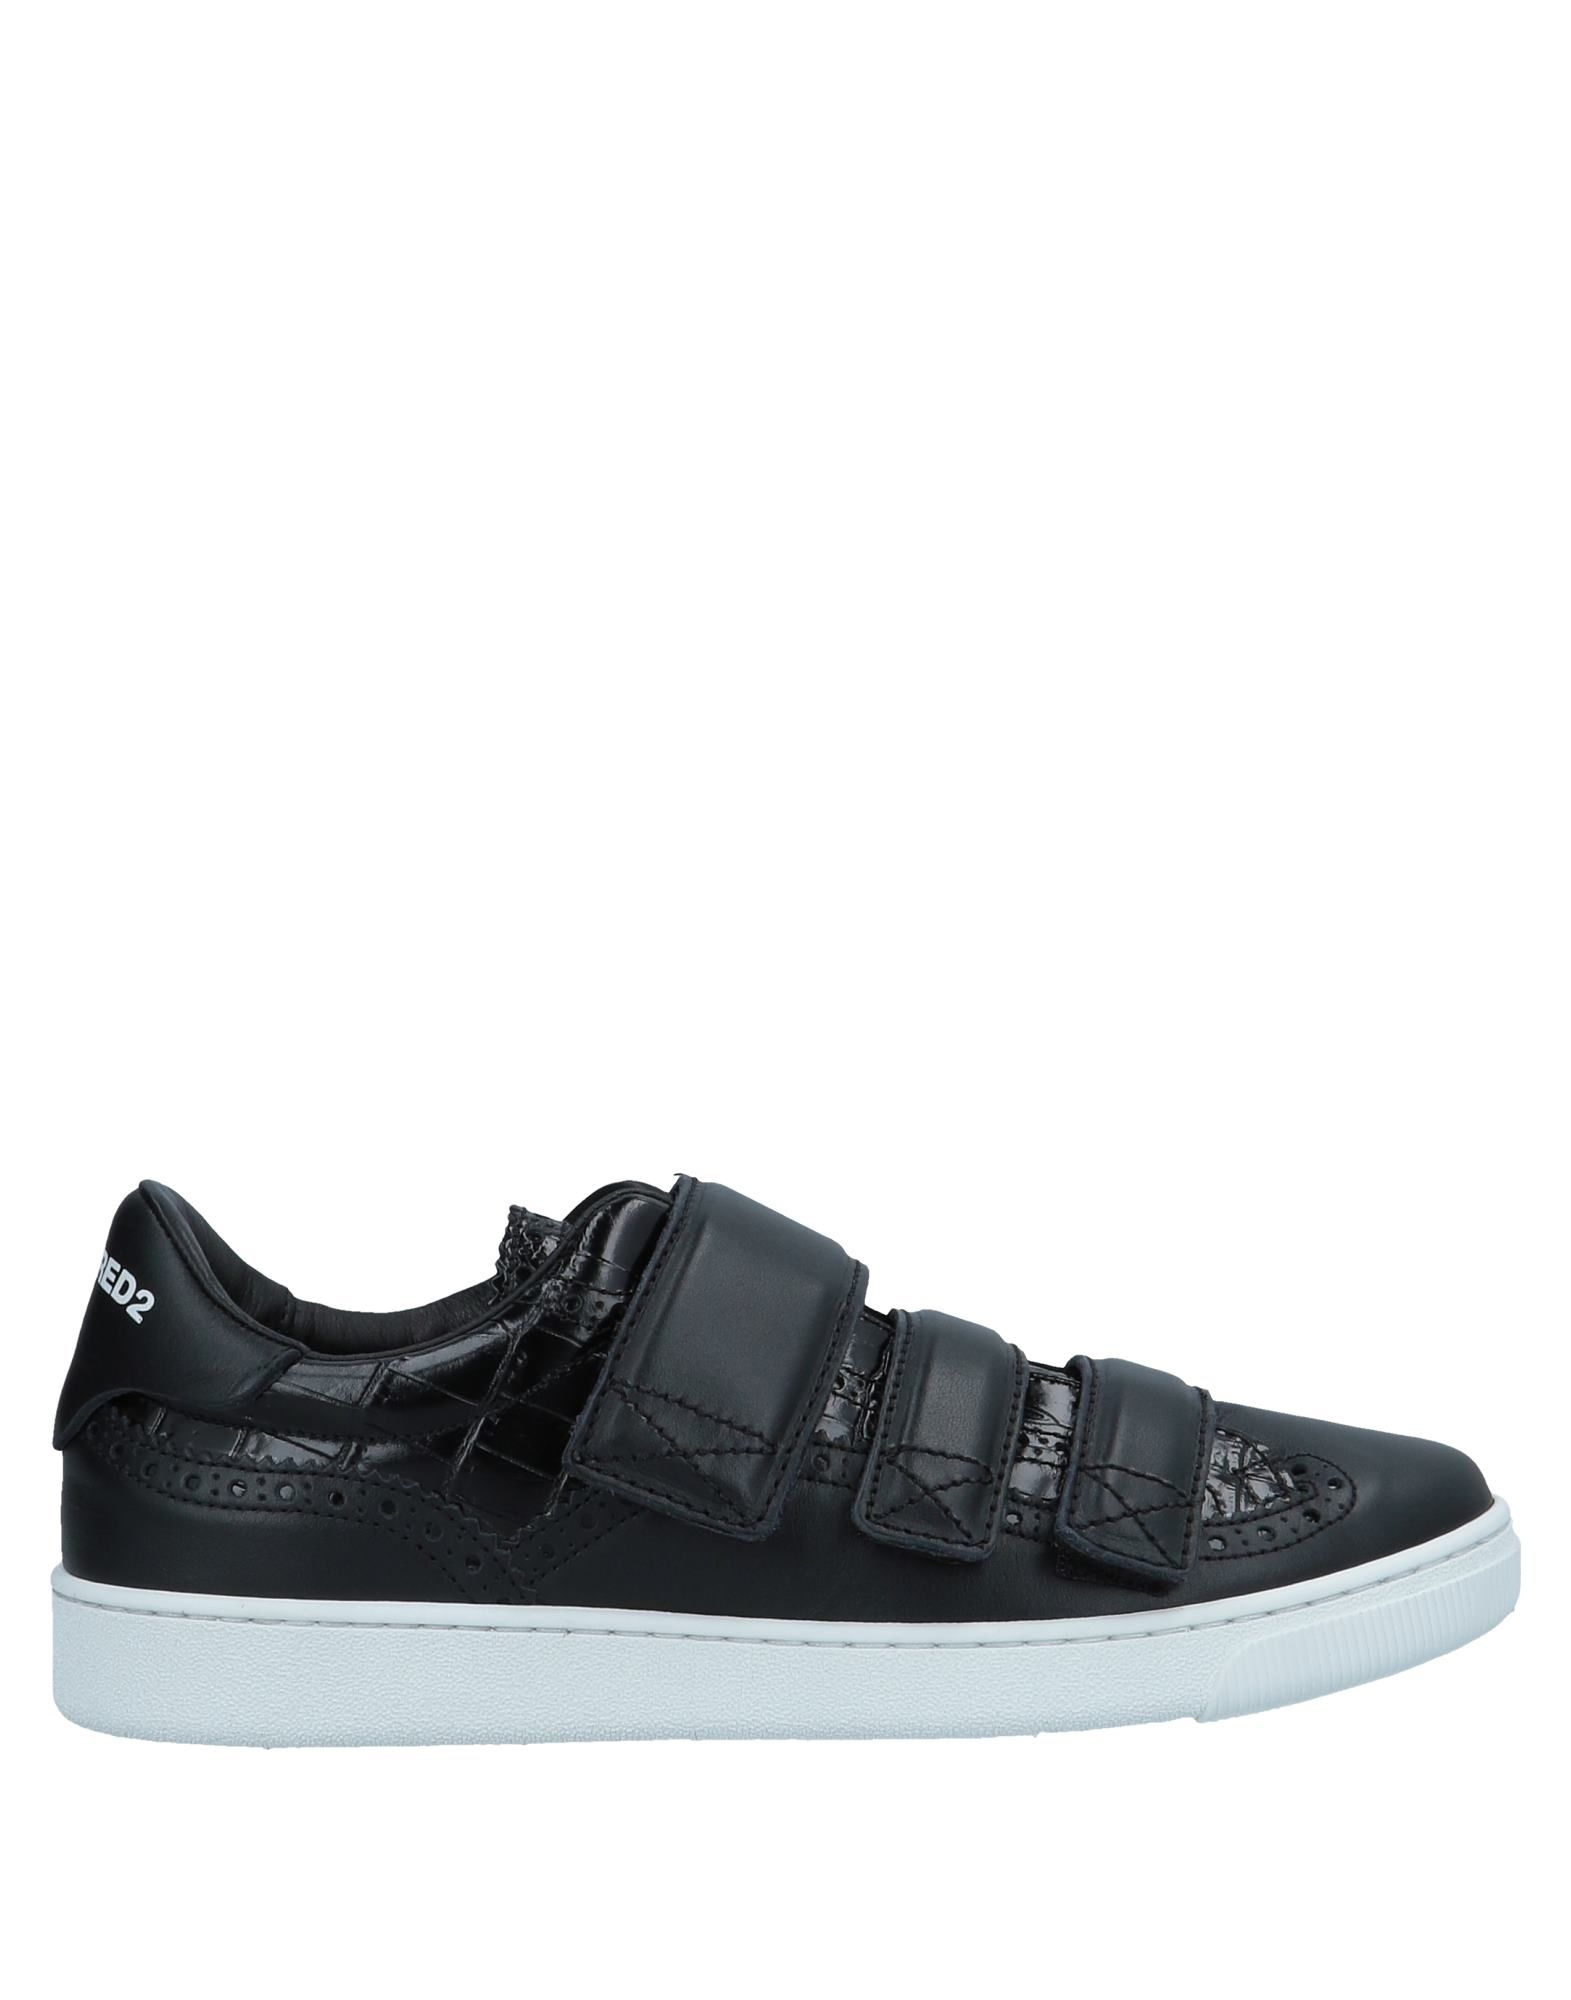 Dsquared2 on Sneakers - Women Dsquared2 Sneakers online on Dsquared2  Canada - 11555747UQ 86555c